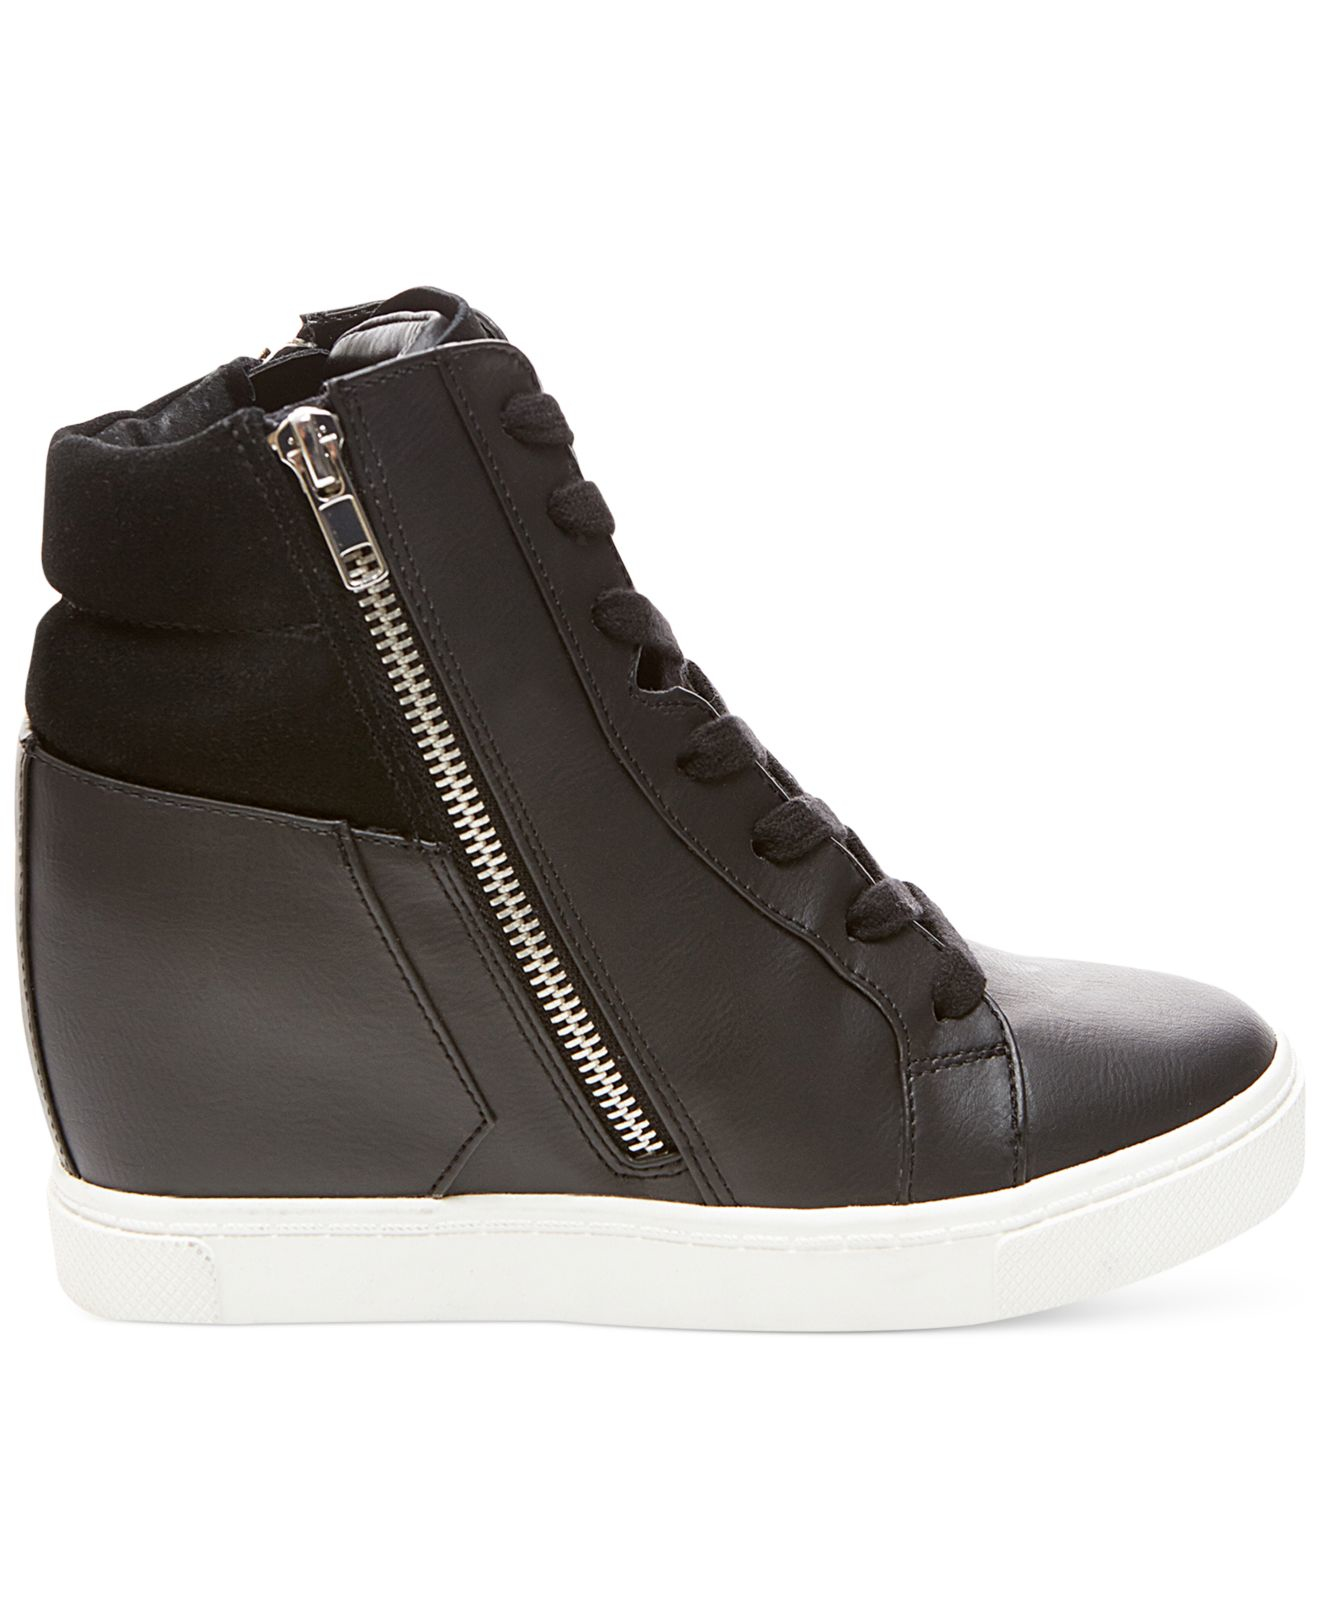 98d9a392bf1 Lyst steve madden lagoon high top wedge sneakers in black jpg 1320x1616 Steve  madden wedge sneakers